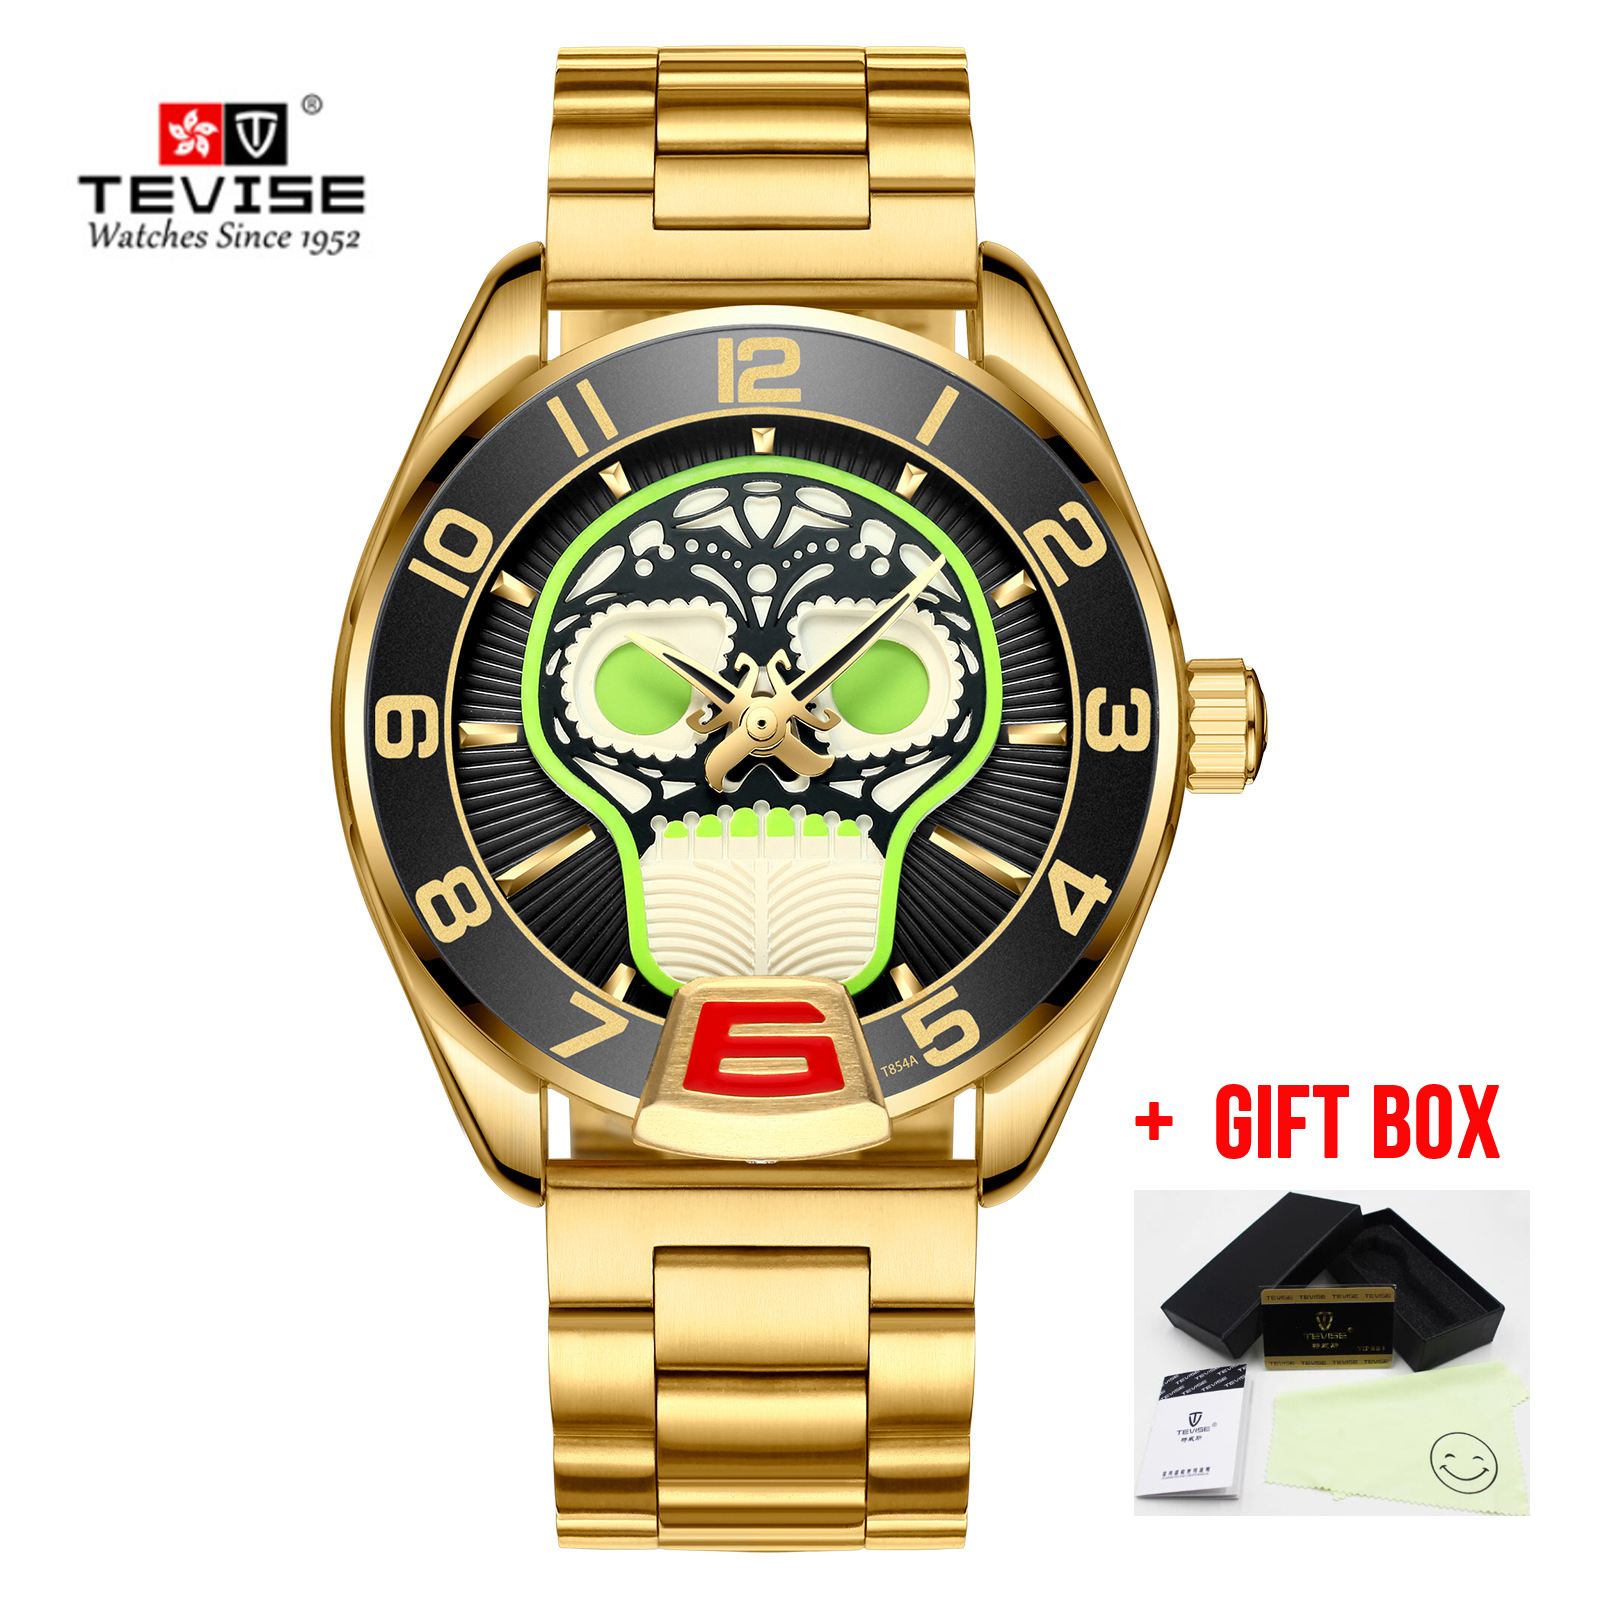 2019 New Relogio Tevise masculino Men Watch Self Winding Automatic Mechanical Watches Business Casual Skull Wristwatches Clock2019 New Relogio Tevise masculino Men Watch Self Winding Automatic Mechanical Watches Business Casual Skull Wristwatches Clock